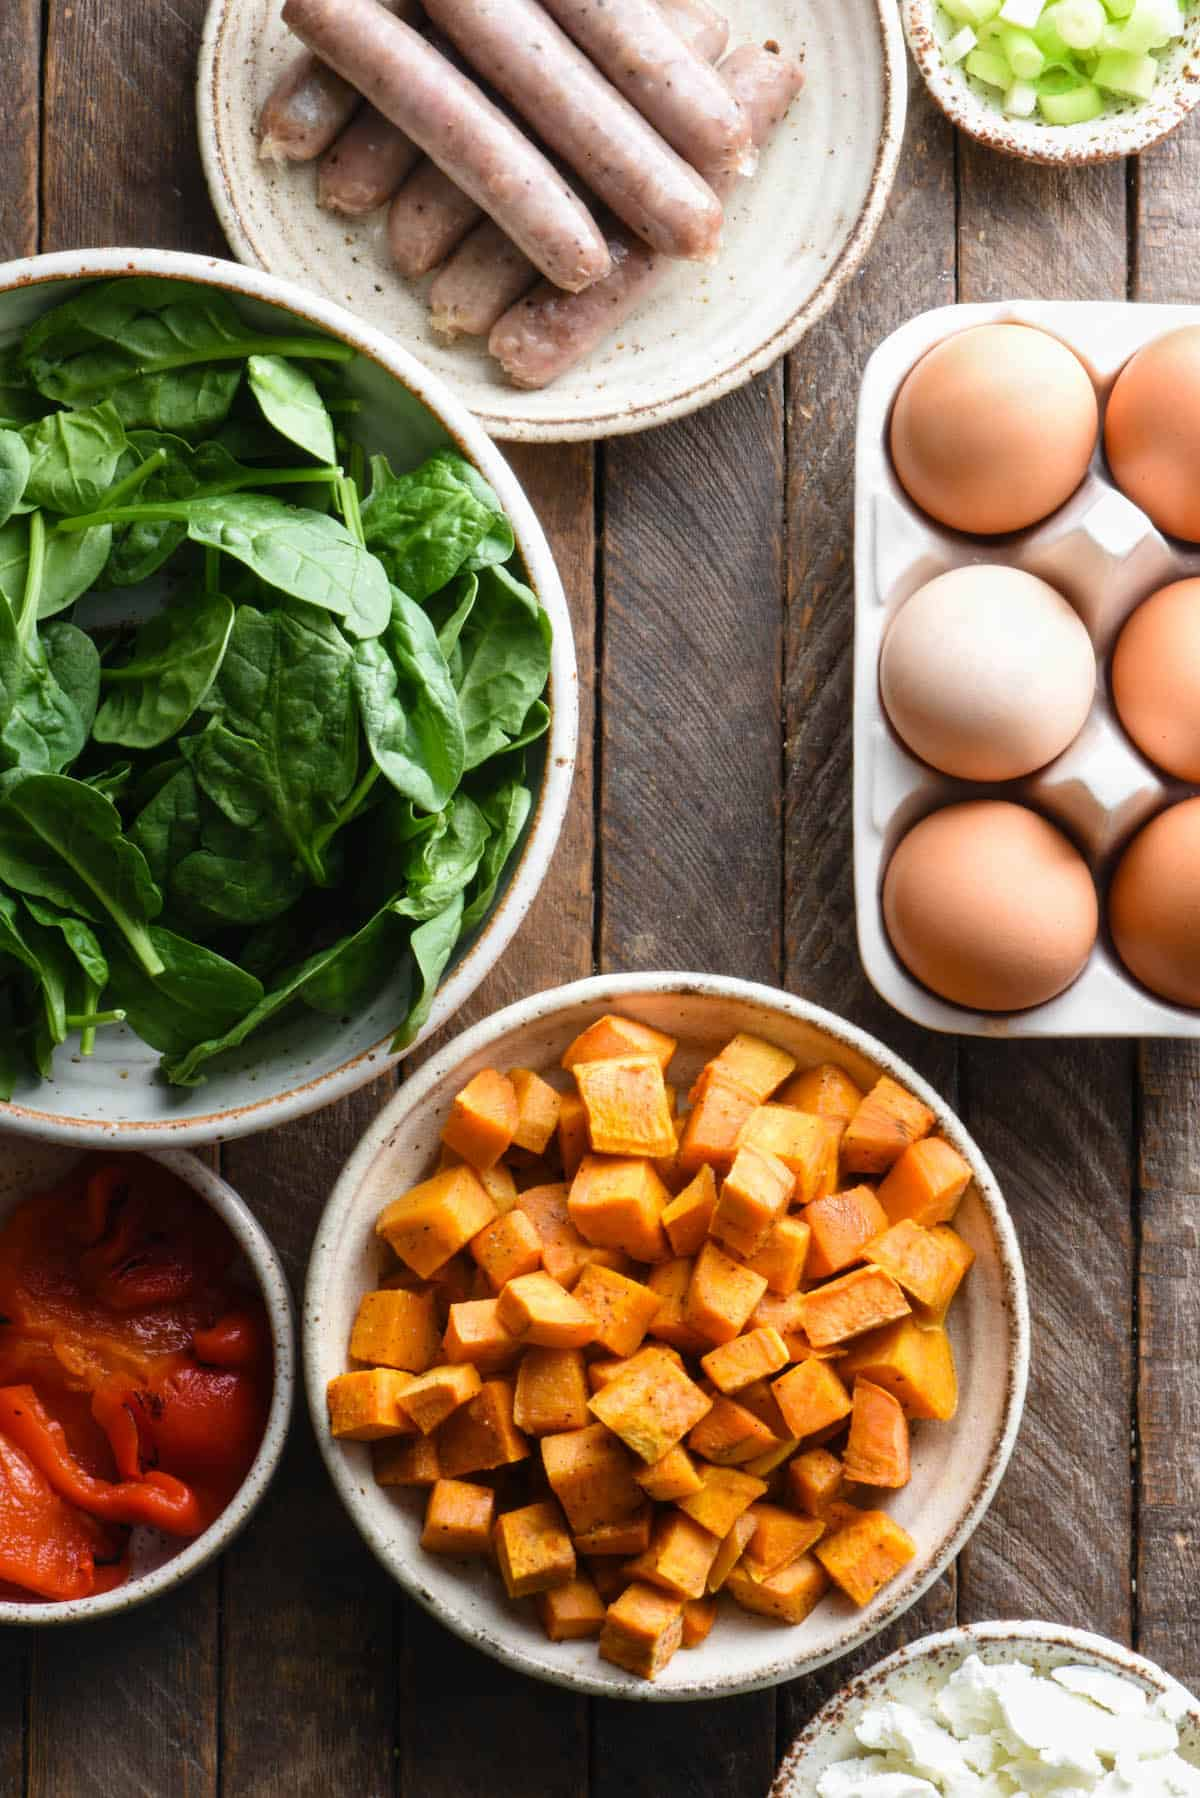 Prepped ingredients for sweet potato and egg casserole, including sausage links, green onions, baby spinach, roasted sweet potatoes and brown eggs.